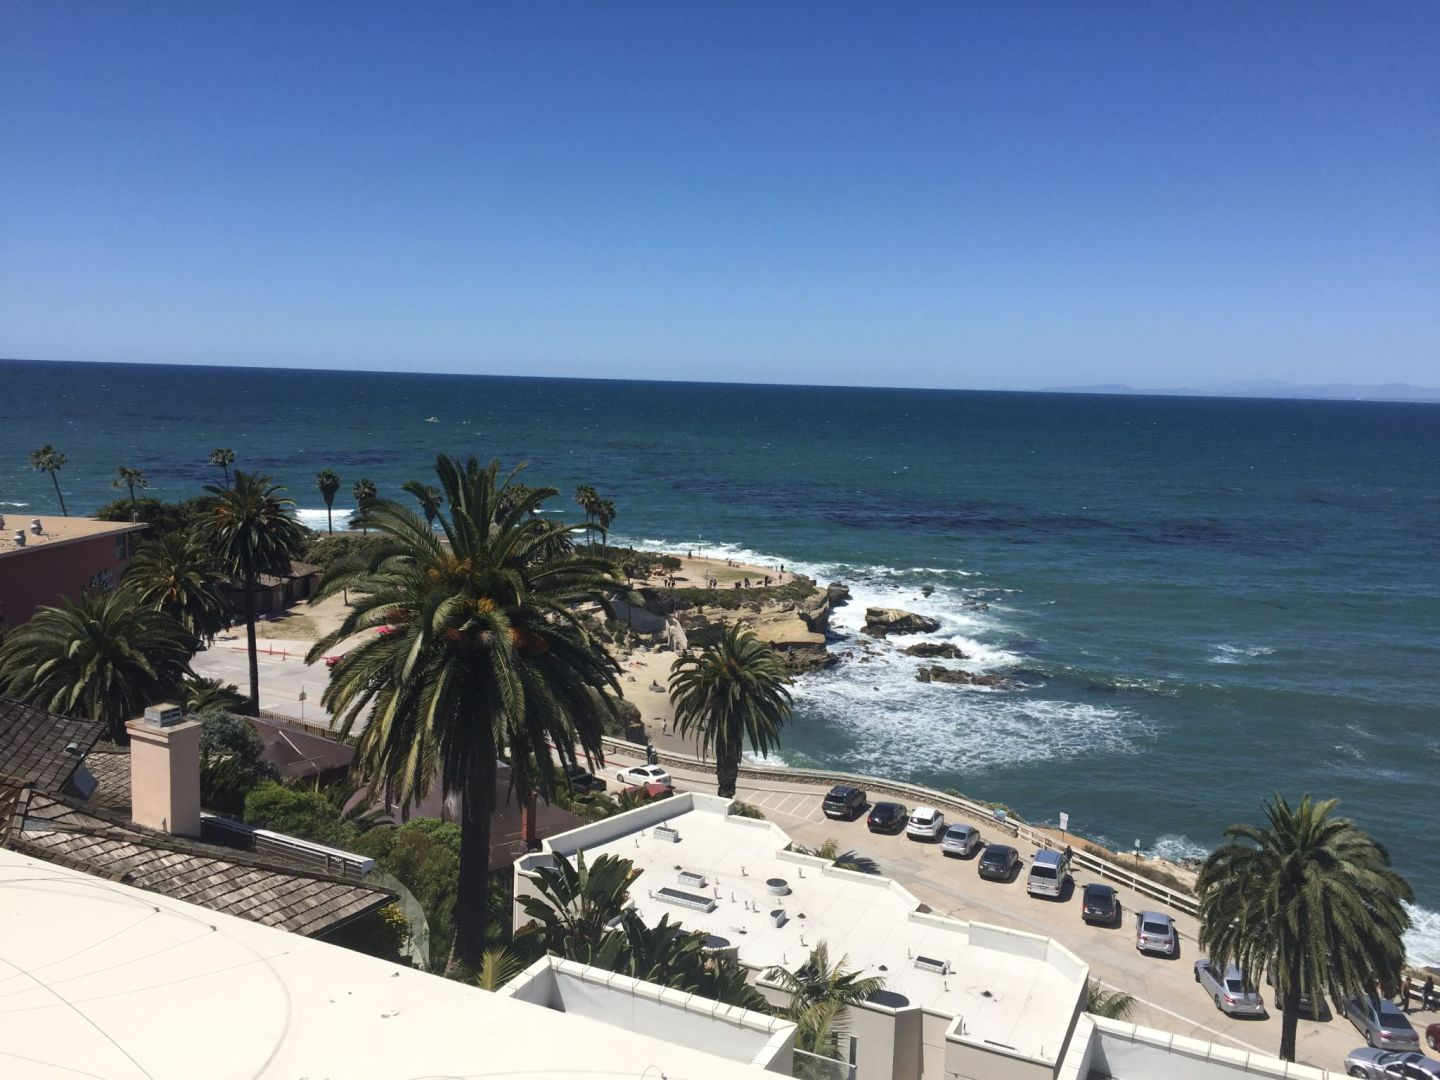 View from George's at the Cove, La Jolla, San Diego